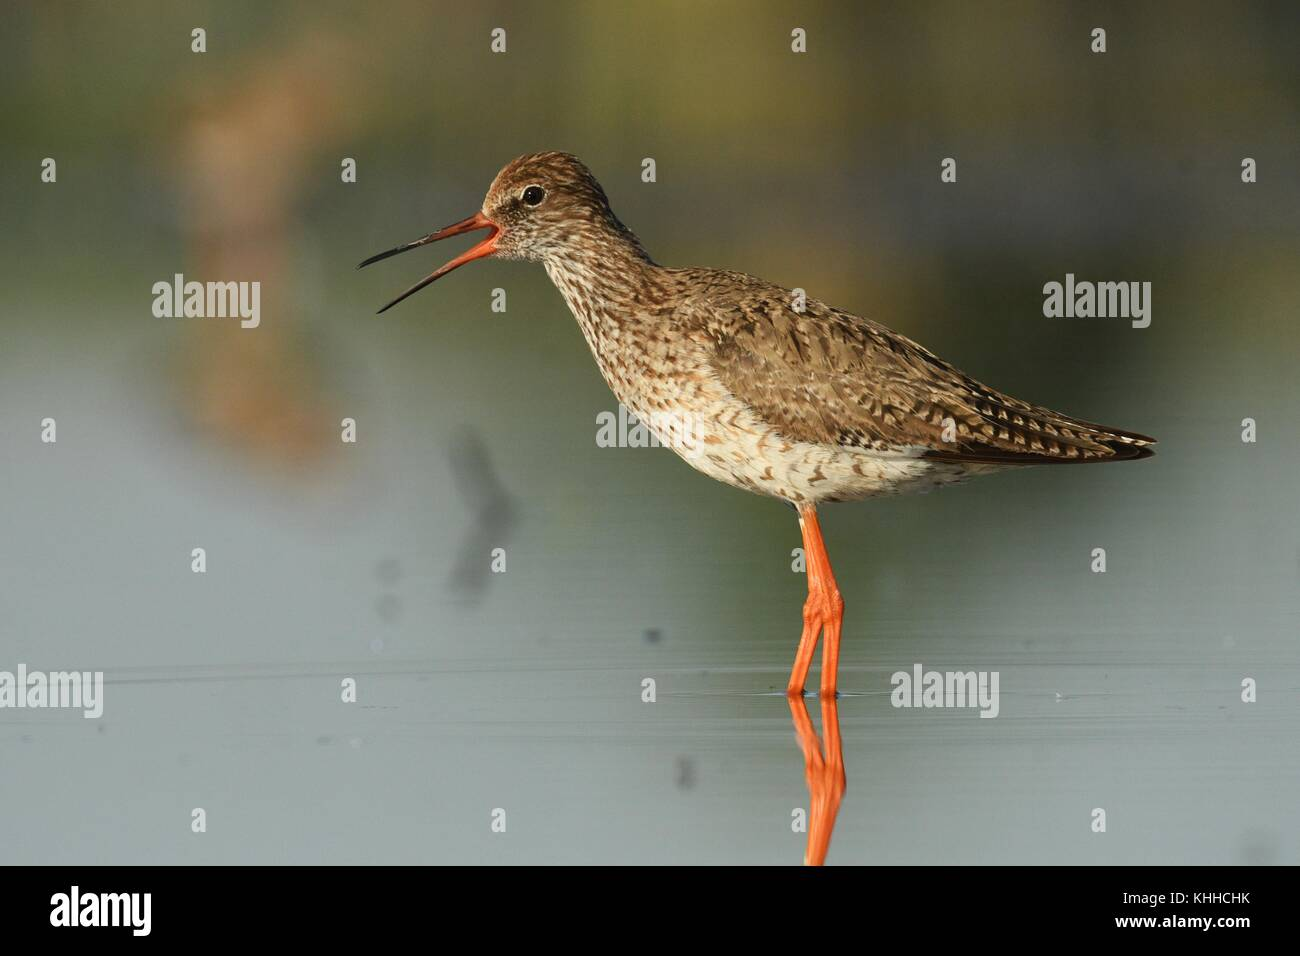 Common Redshank (Tringa totanus) standinf in a shallow water and calling. - Stock Image